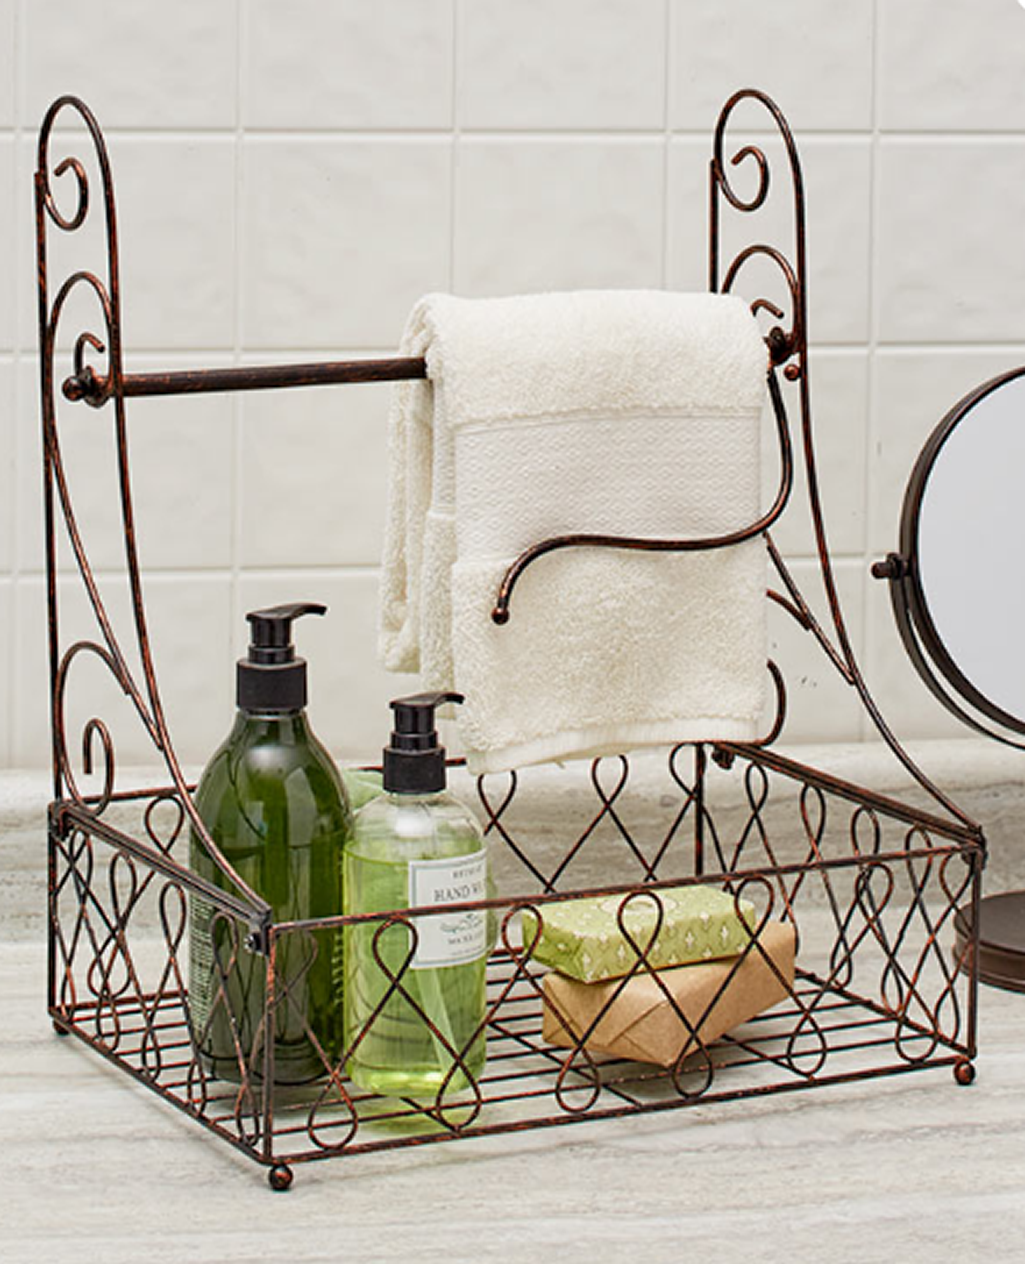 Bathroom Countertop Paper Towel Holder With Hand Soap Storage